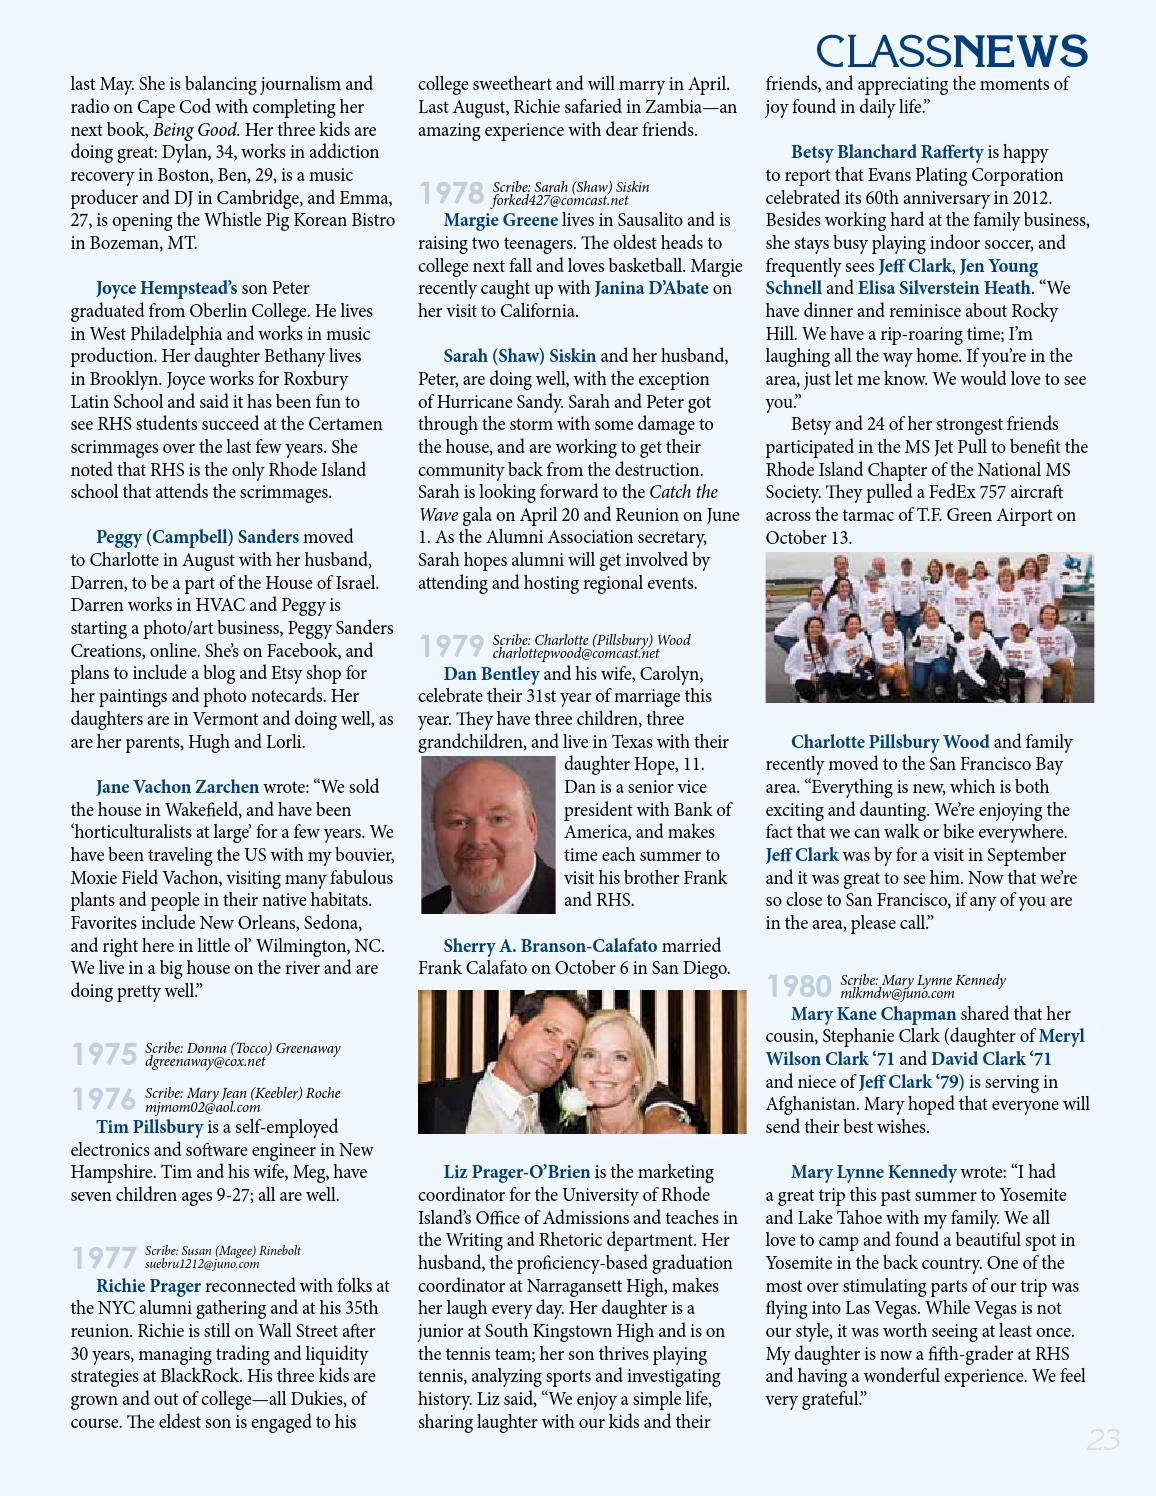 The Bulletin - Winter 2013 by Rocky Hill School - issuu